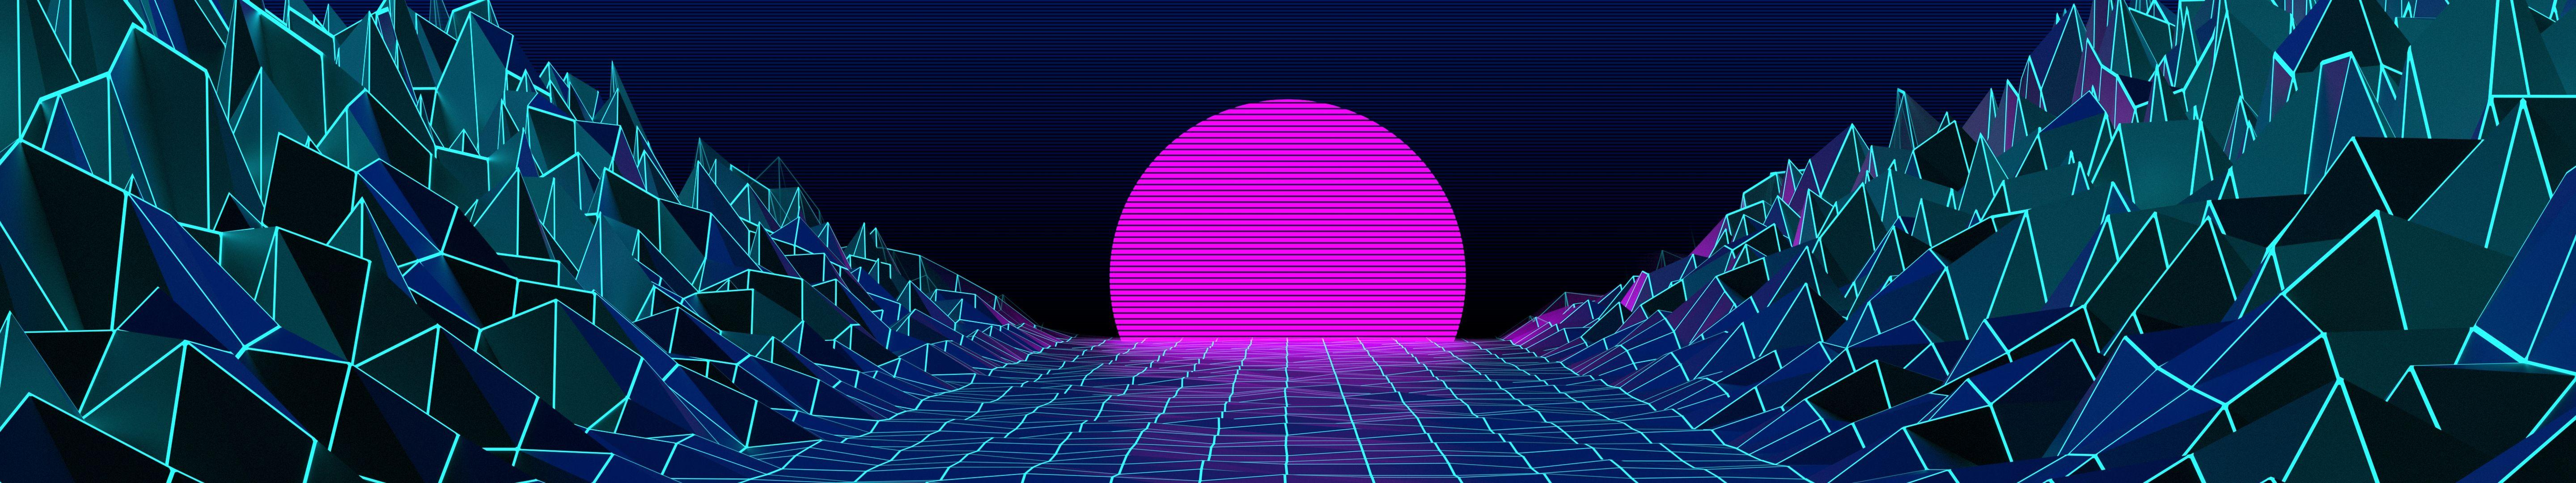 5760x1080] Vaporwave Wallpapers : multiwall